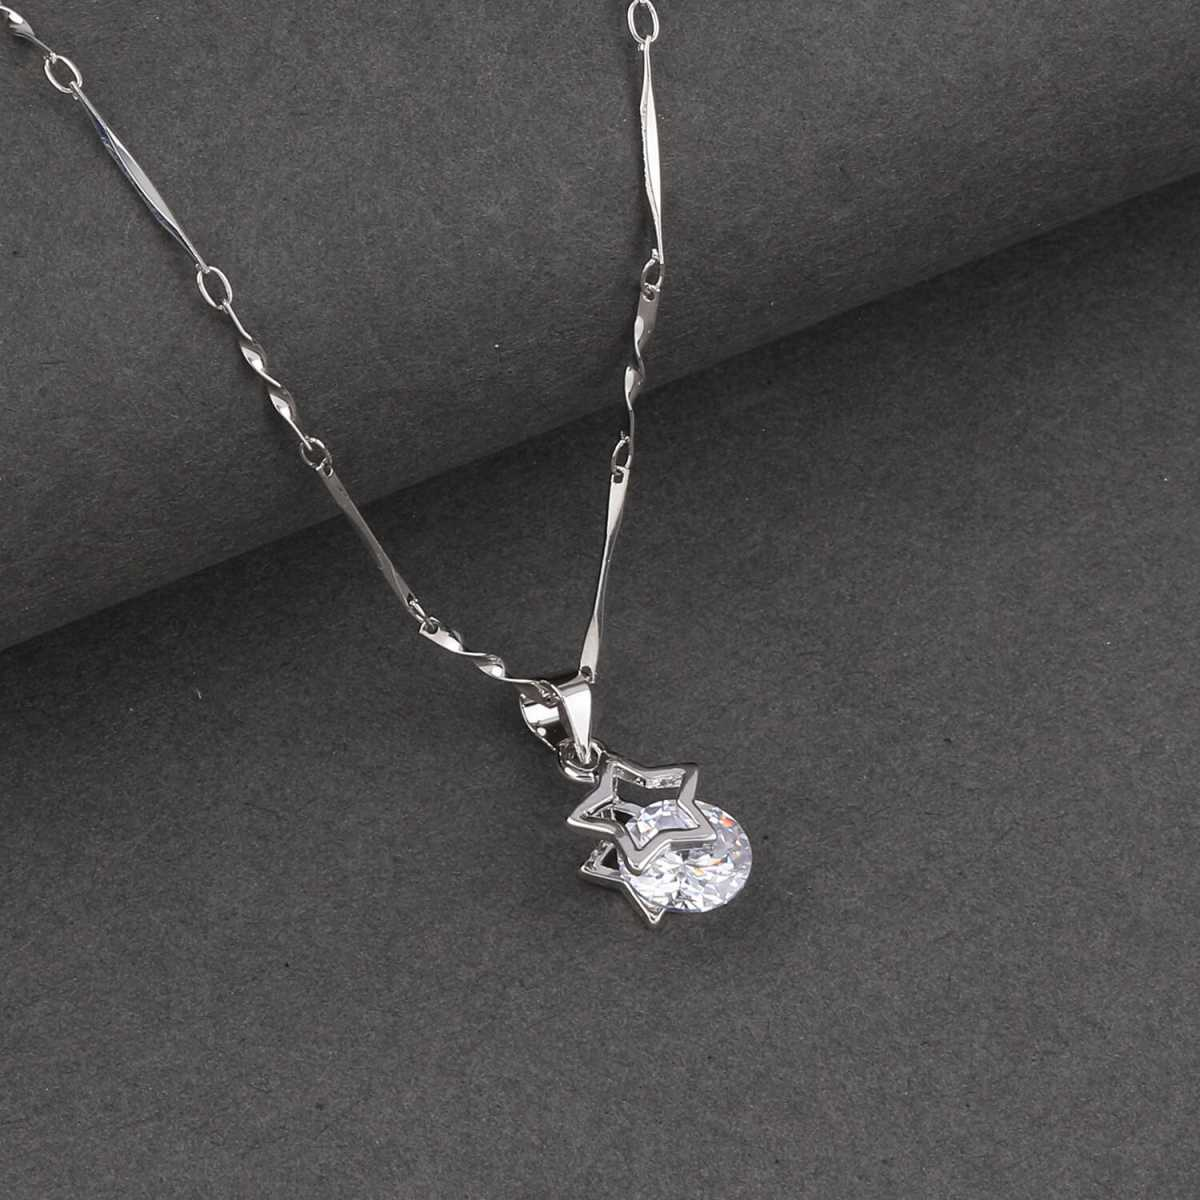 SILVER SHINE  Silver Plated Delicated Chain With Star Shape Solitaire Diamond Pendant For Women